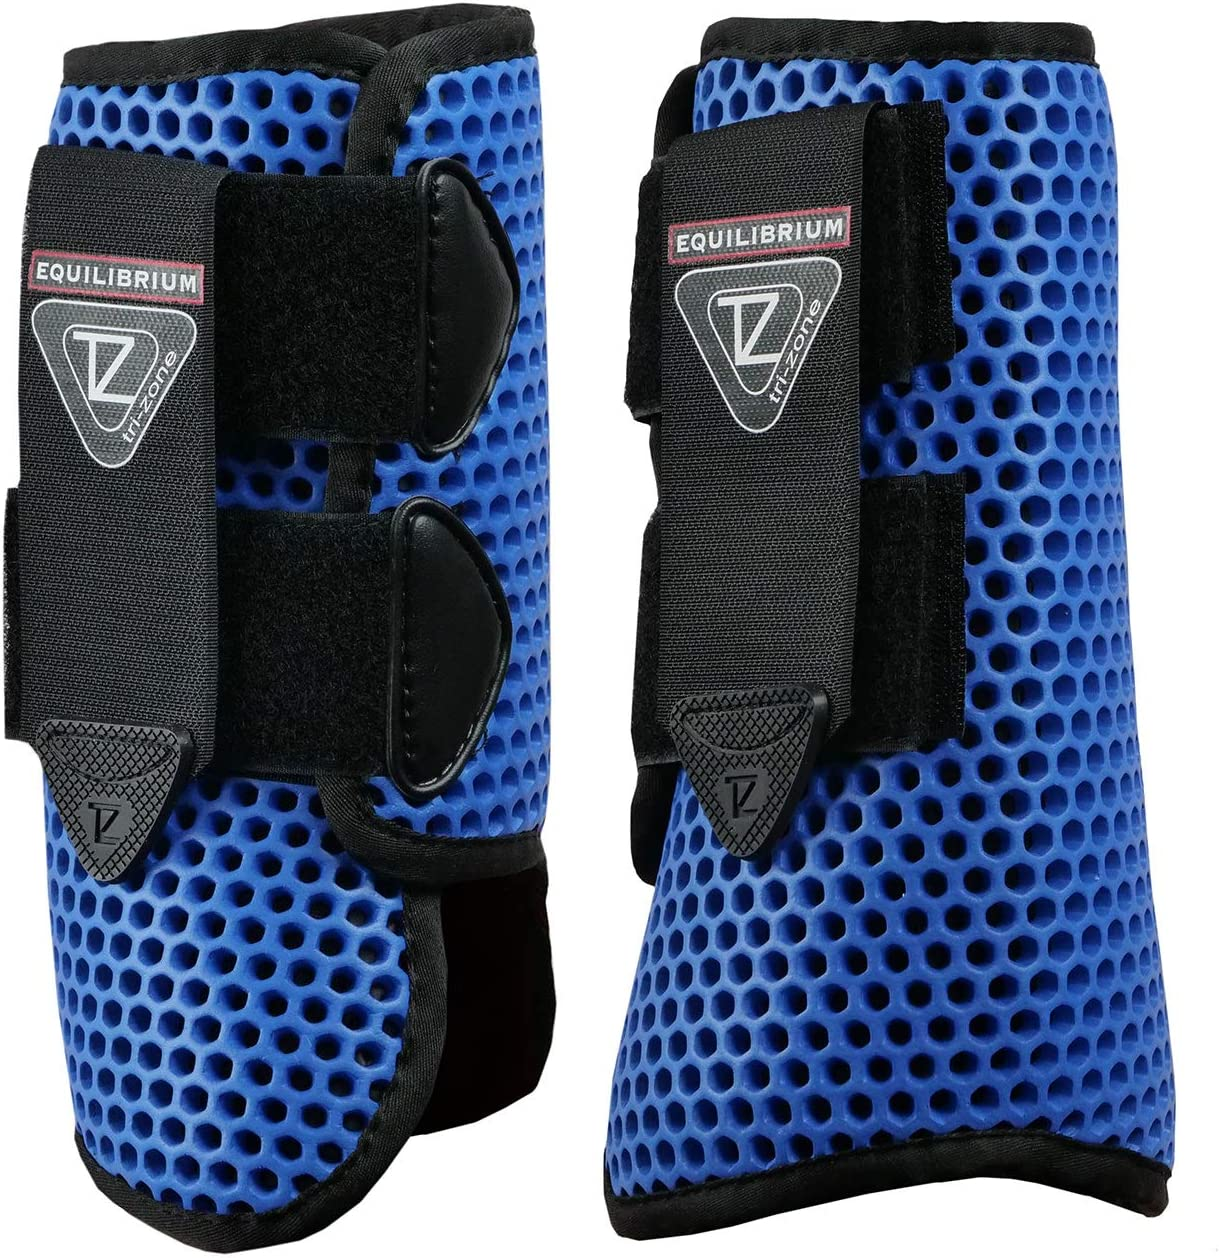 Equilibrium Tri-Zone All Sports Horse Boots - Azul Real